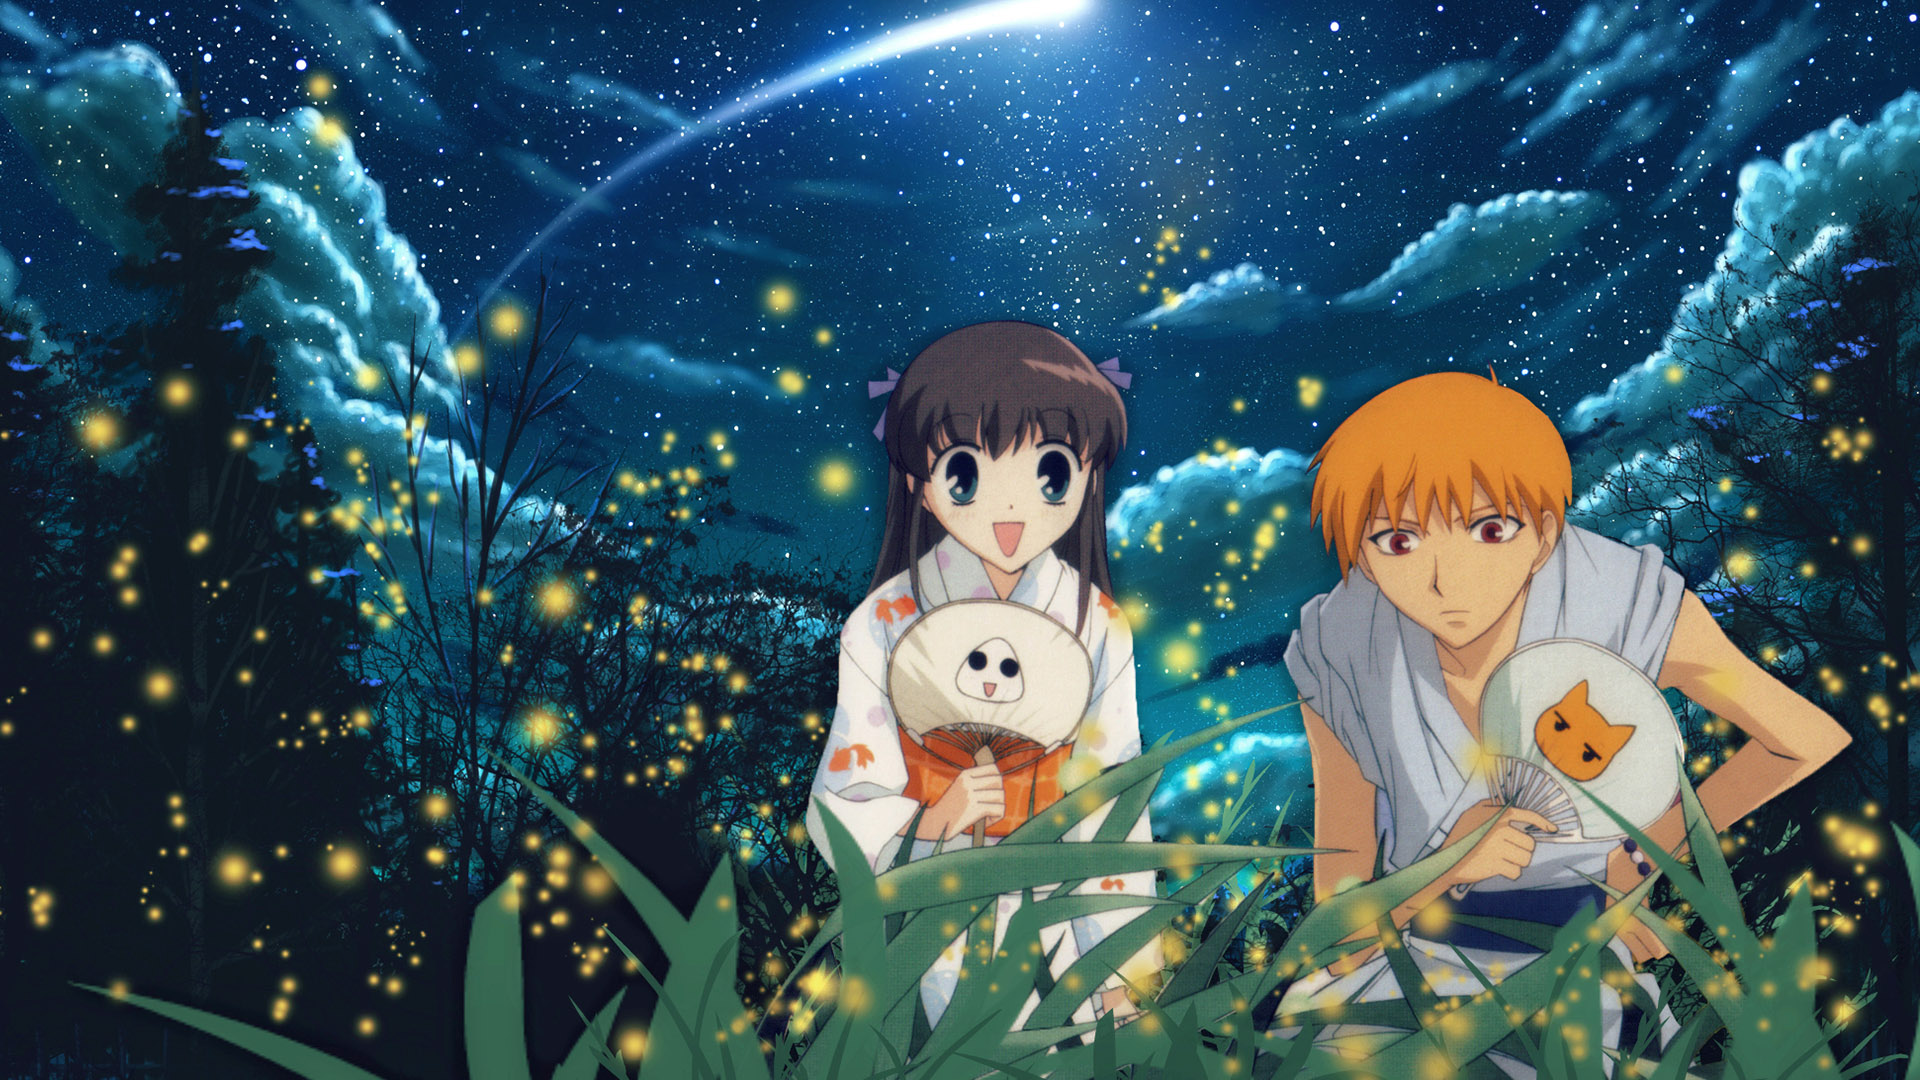 Fruits basket characters with pictures Our Sewing Products - The Sewing Basket